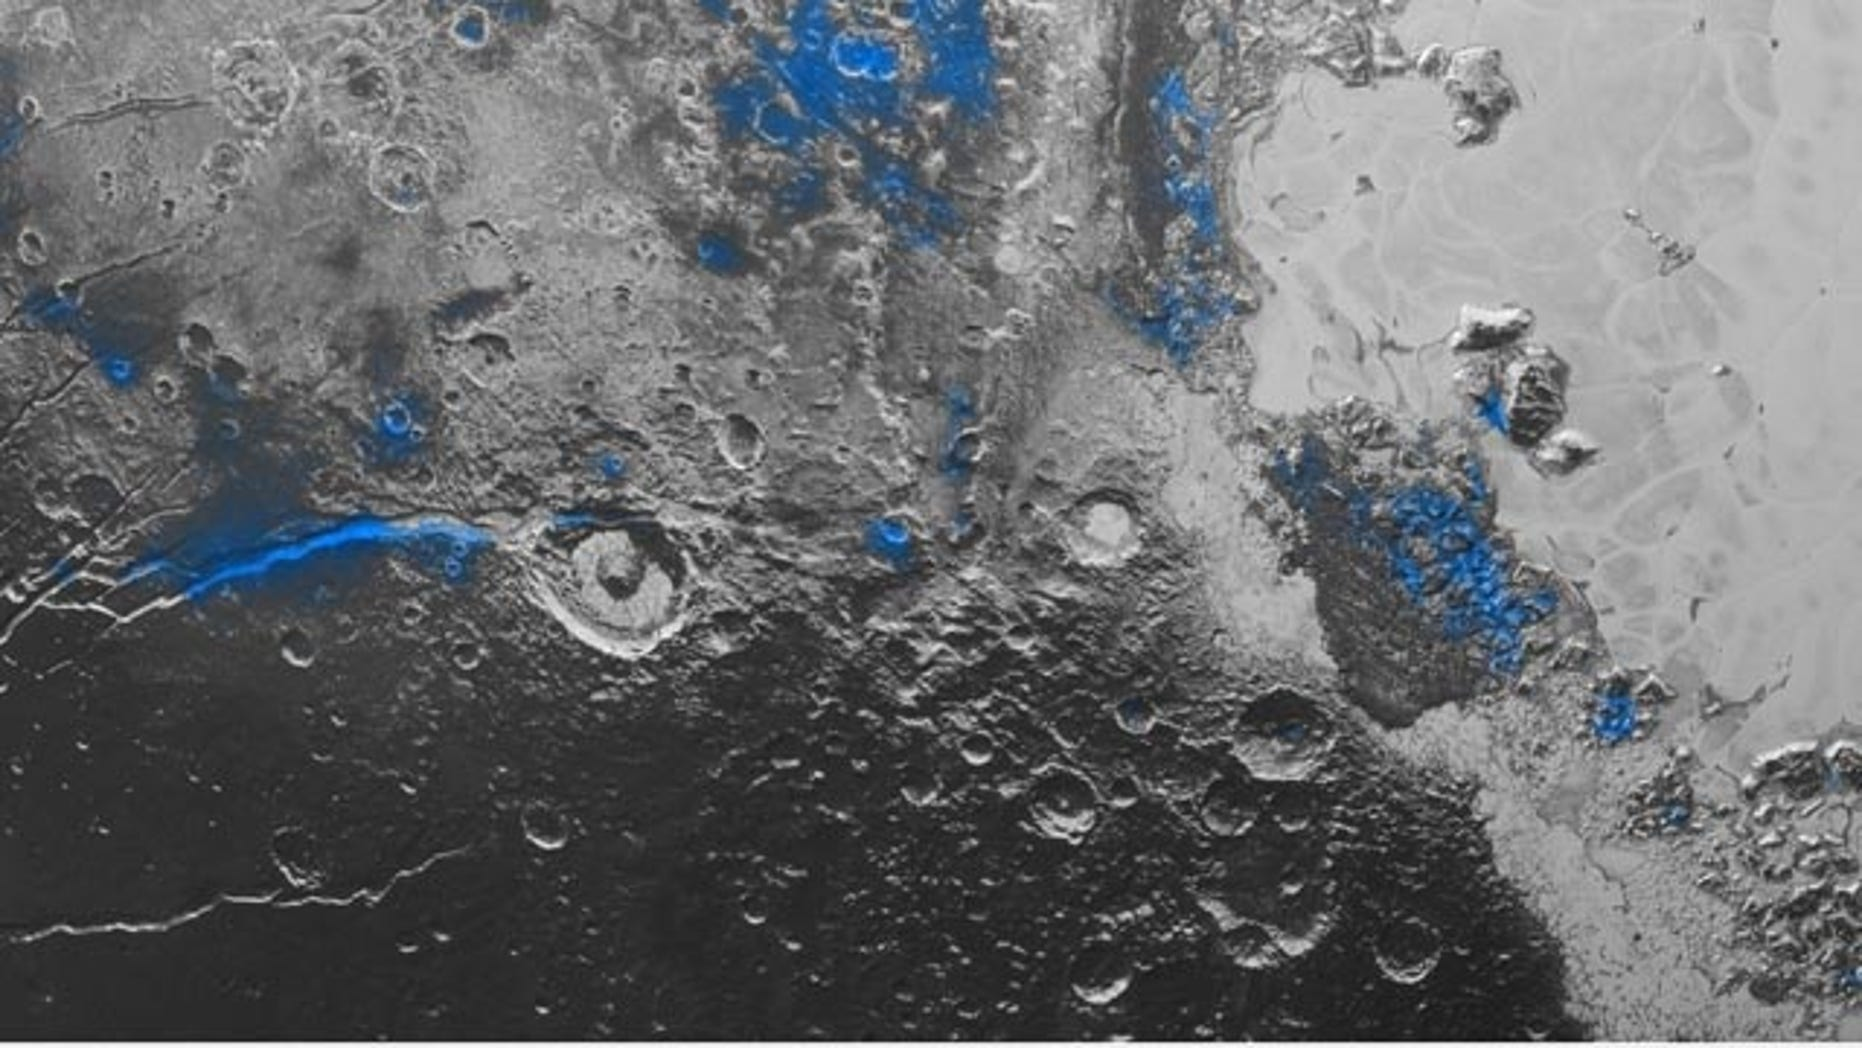 Oct. 8, 2015: This image released by NASA shows regions with exposed water ice highlighted in blue in this composite image taken with the New Horizons spacecraft's Ralph instrument. The image combines visible imagery from the Multispectral Visible Imaging Camera (MVIC) with infrared spectroscopy from the Linear Etalon Imaging Spectral Array (LEISA).  The scene is approximately 280 miles across. (NASA/JHUAPL/SwRI via AP)